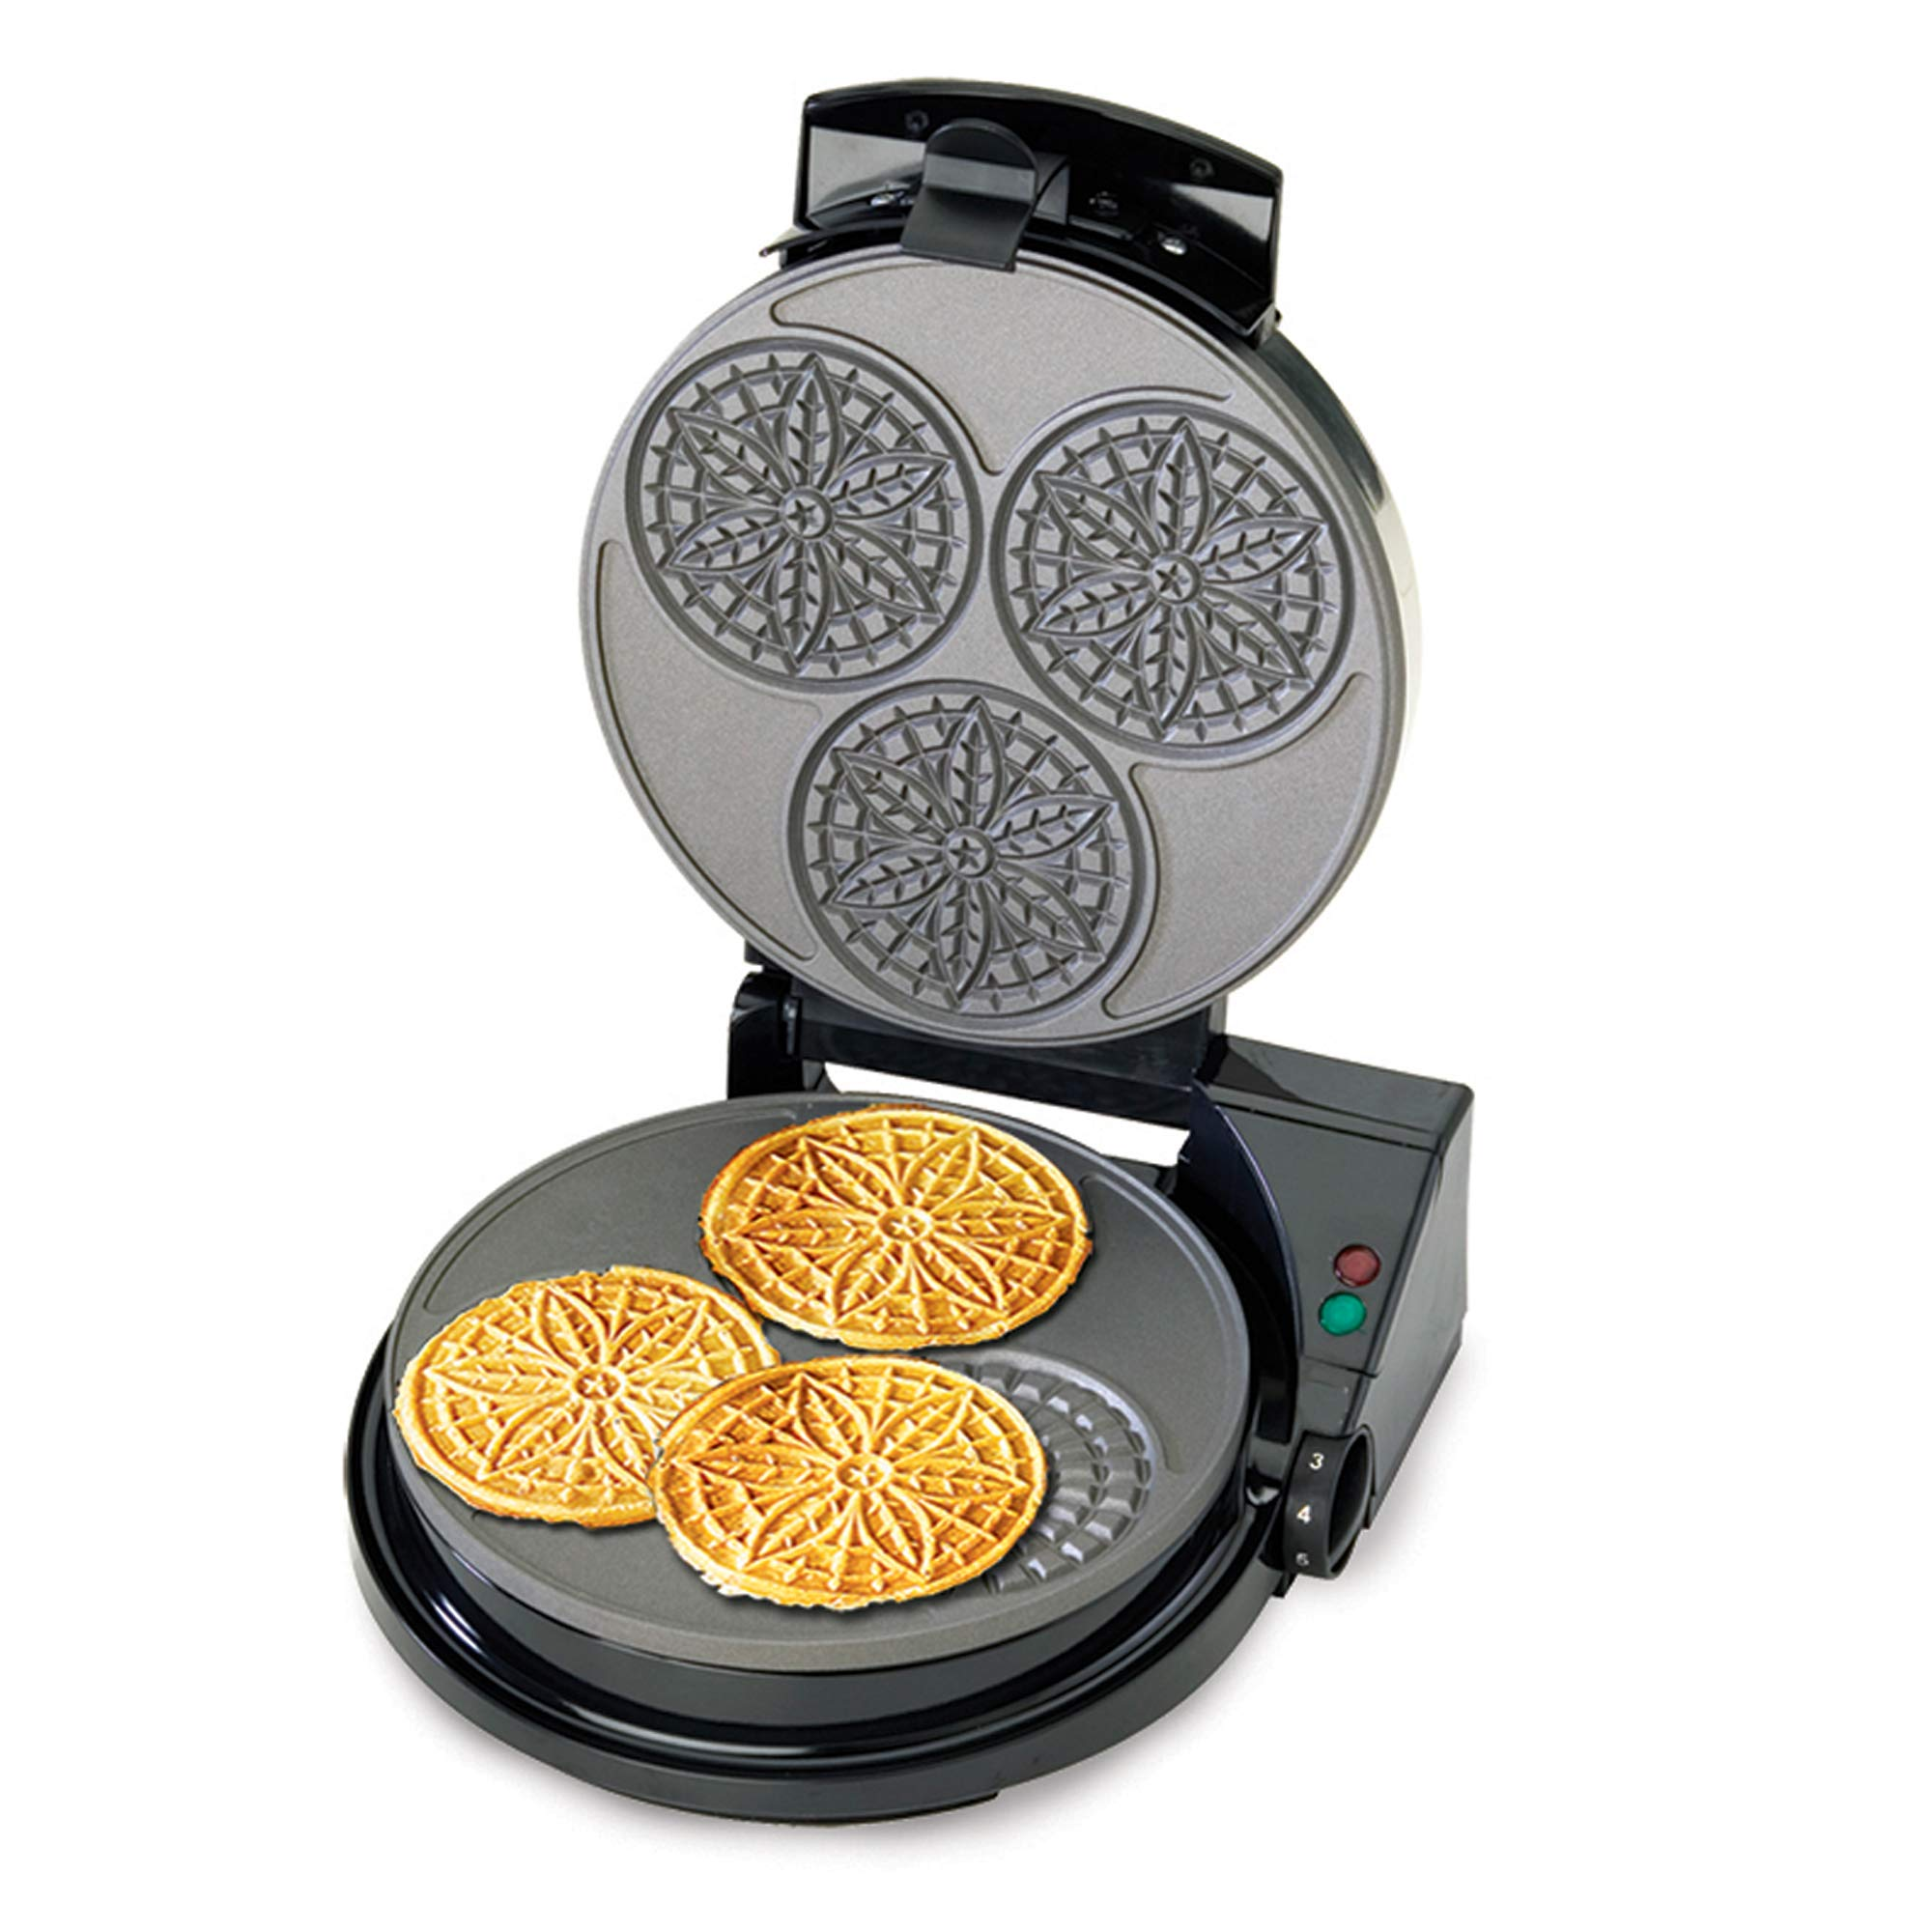 Chef'sChoice 835 PizzellePro Express Bake Nonstick Pizzelle Maker Features Color Select Control and Instant Temperature Recovery Easy to Clean, 3-Slice, Silver by Chef'sChoice